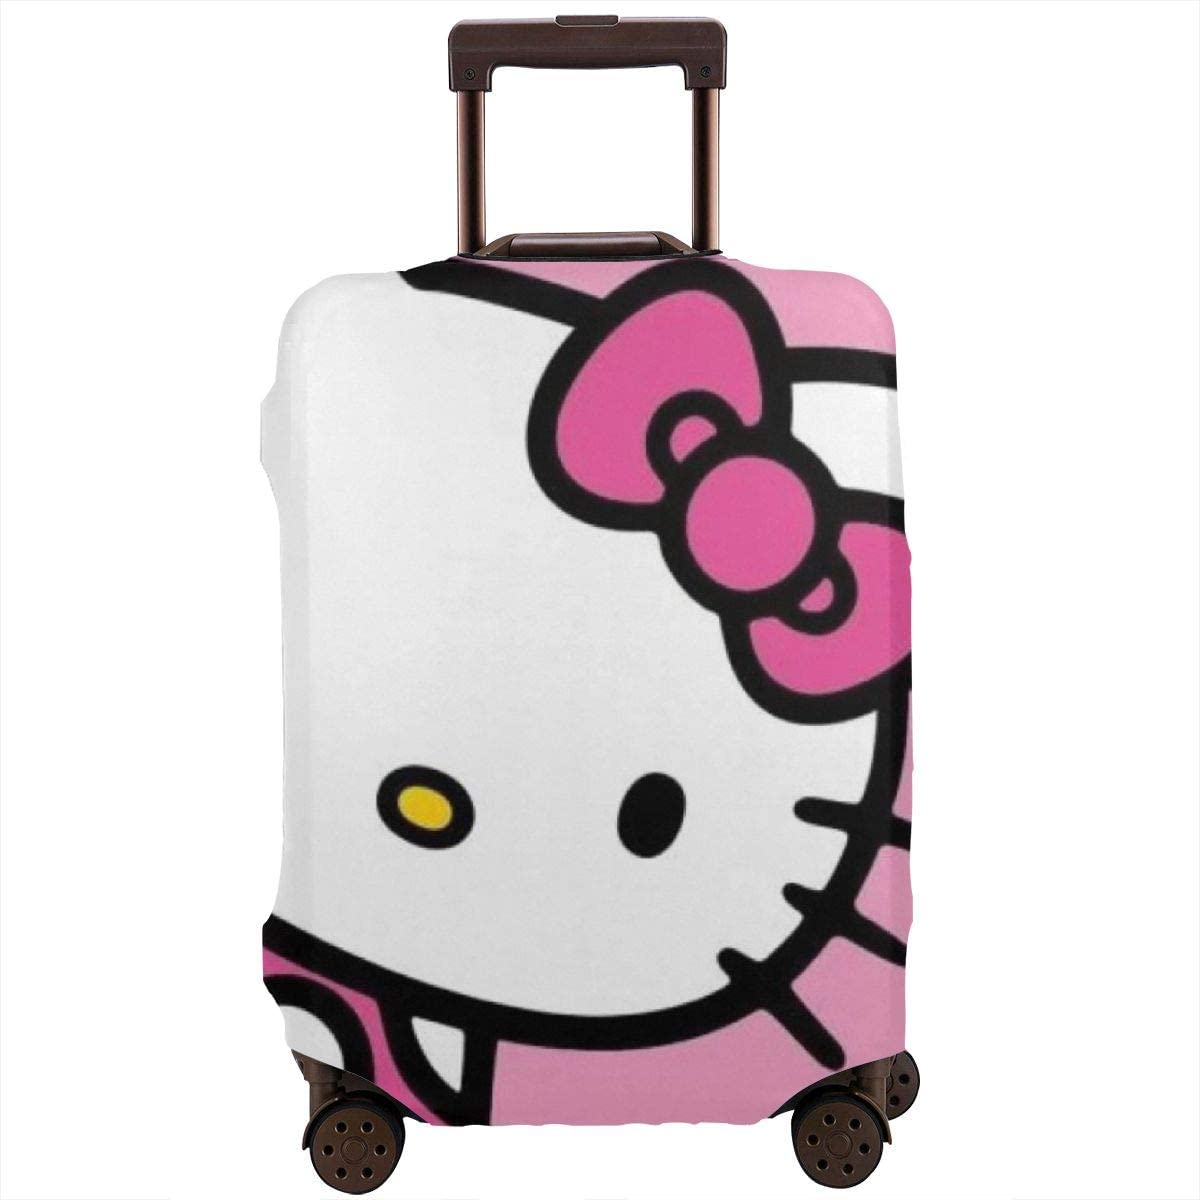 Travel Luggage Miami Mall Cover Max 75% OFF Hello Kitty Washable Suitcase Bag Protector